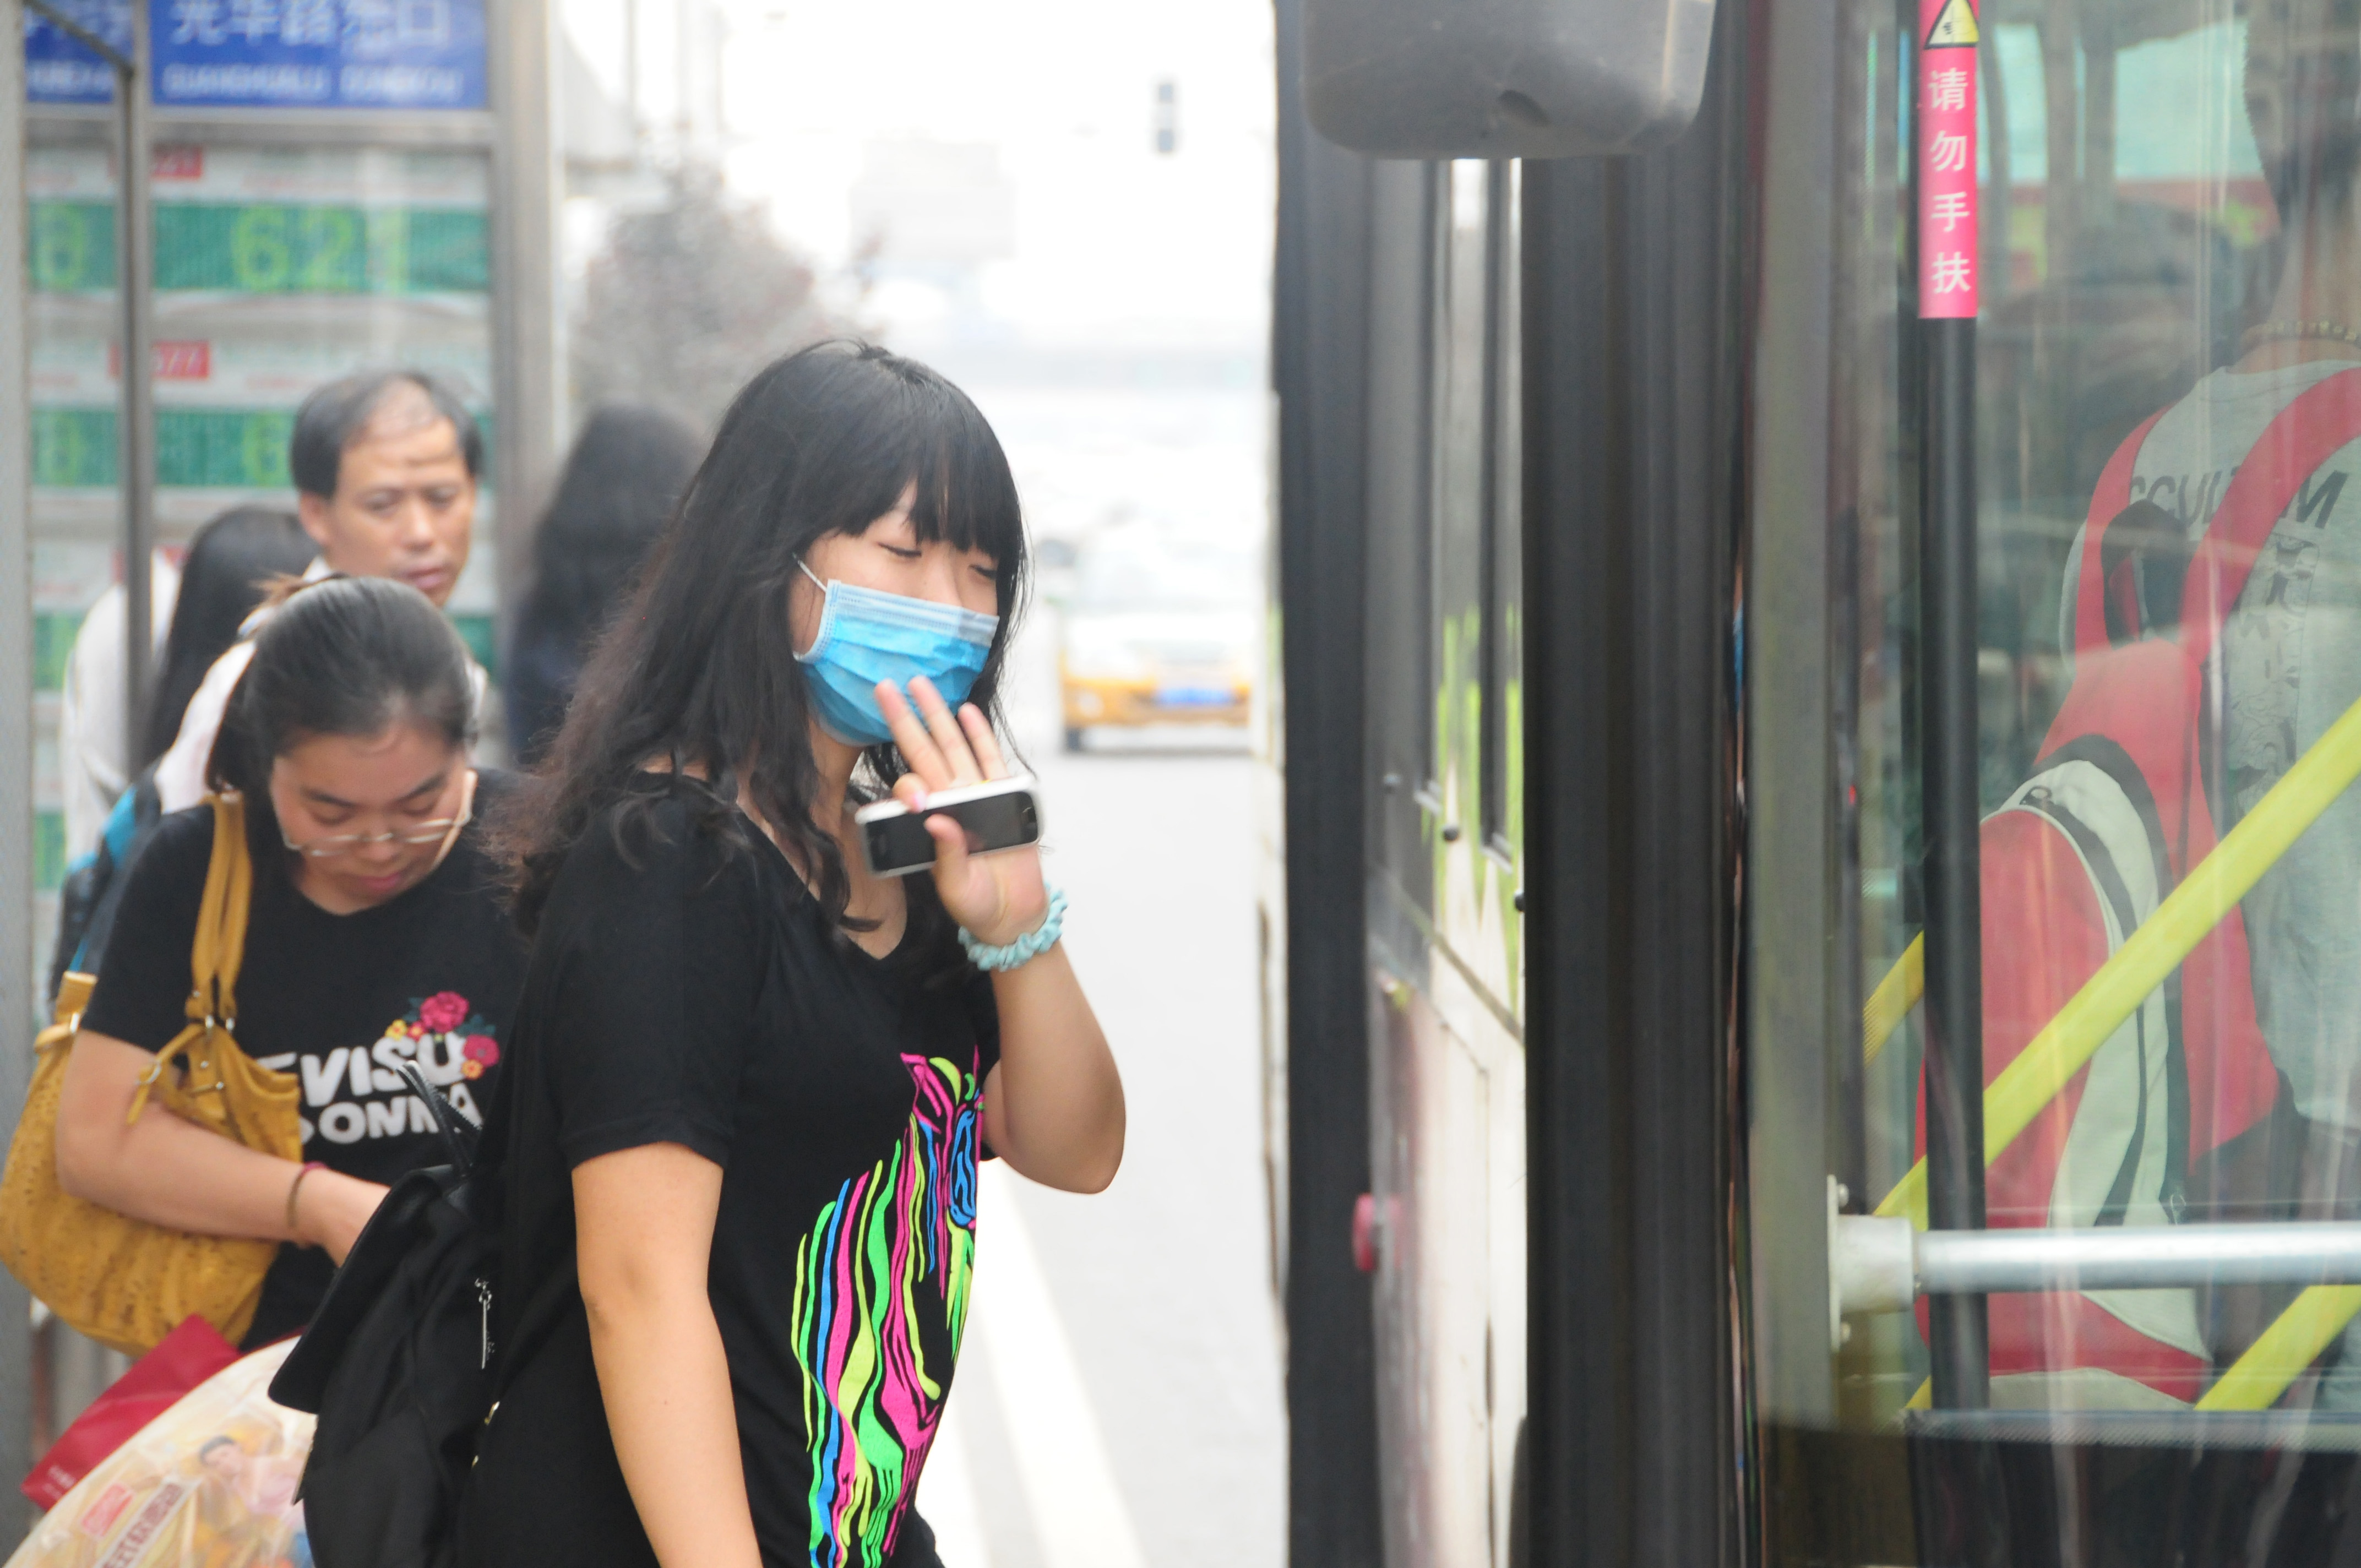 Beijing's air pollution reached eight times World Health Organization-recommended safe levels.